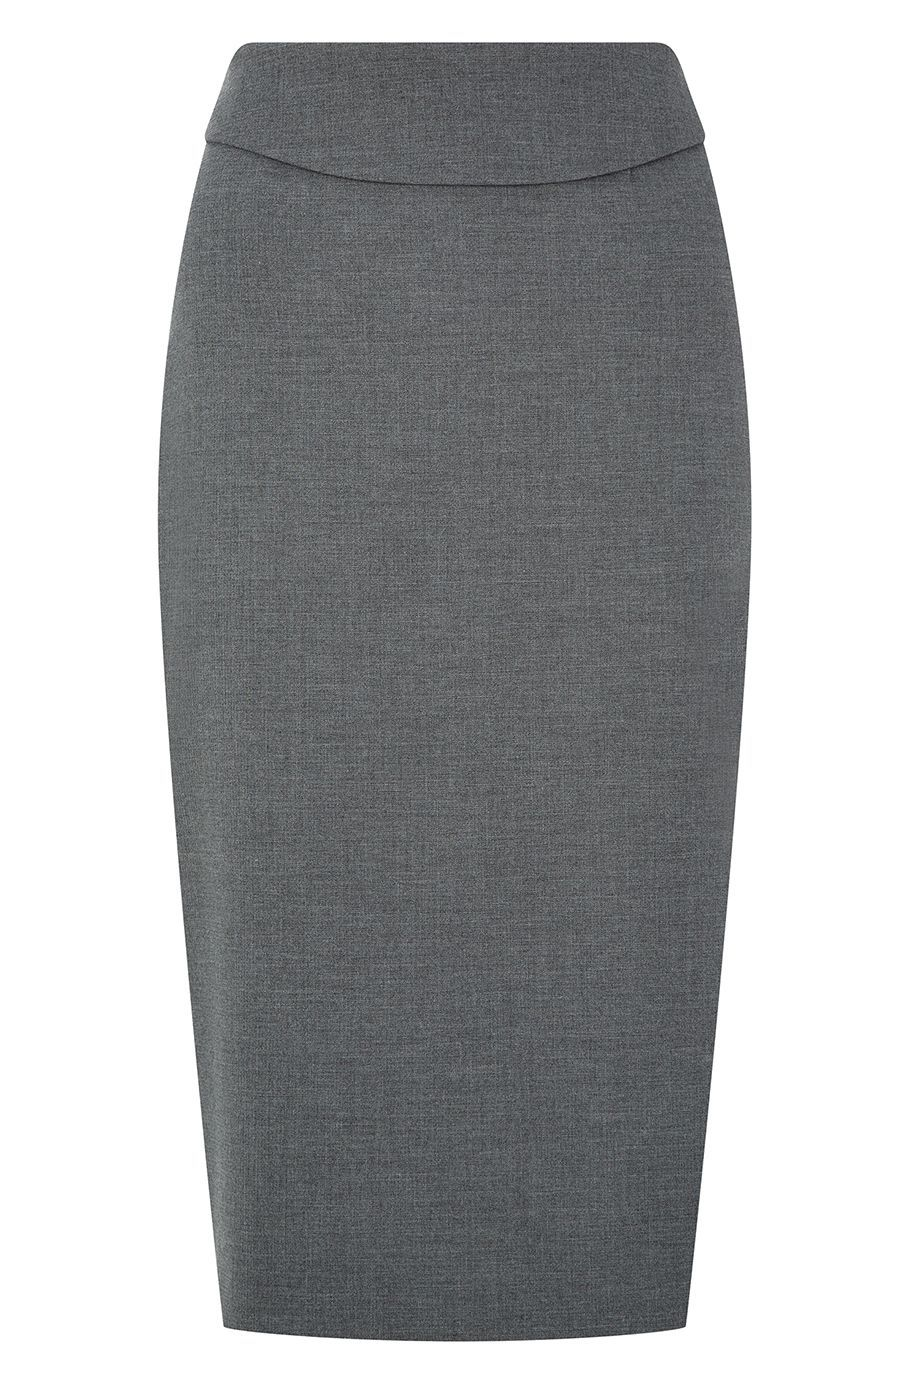 Daxton Skirt, Grey - pattern: plain; style: pencil; fit: tailored/fitted; waist: high rise; predominant colour: charcoal; occasions: work, creative work; length: on the knee; fibres: viscose/rayon - stretch; pattern type: fabric; texture group: woven light midweight; season: a/w 2015; wardrobe: basic